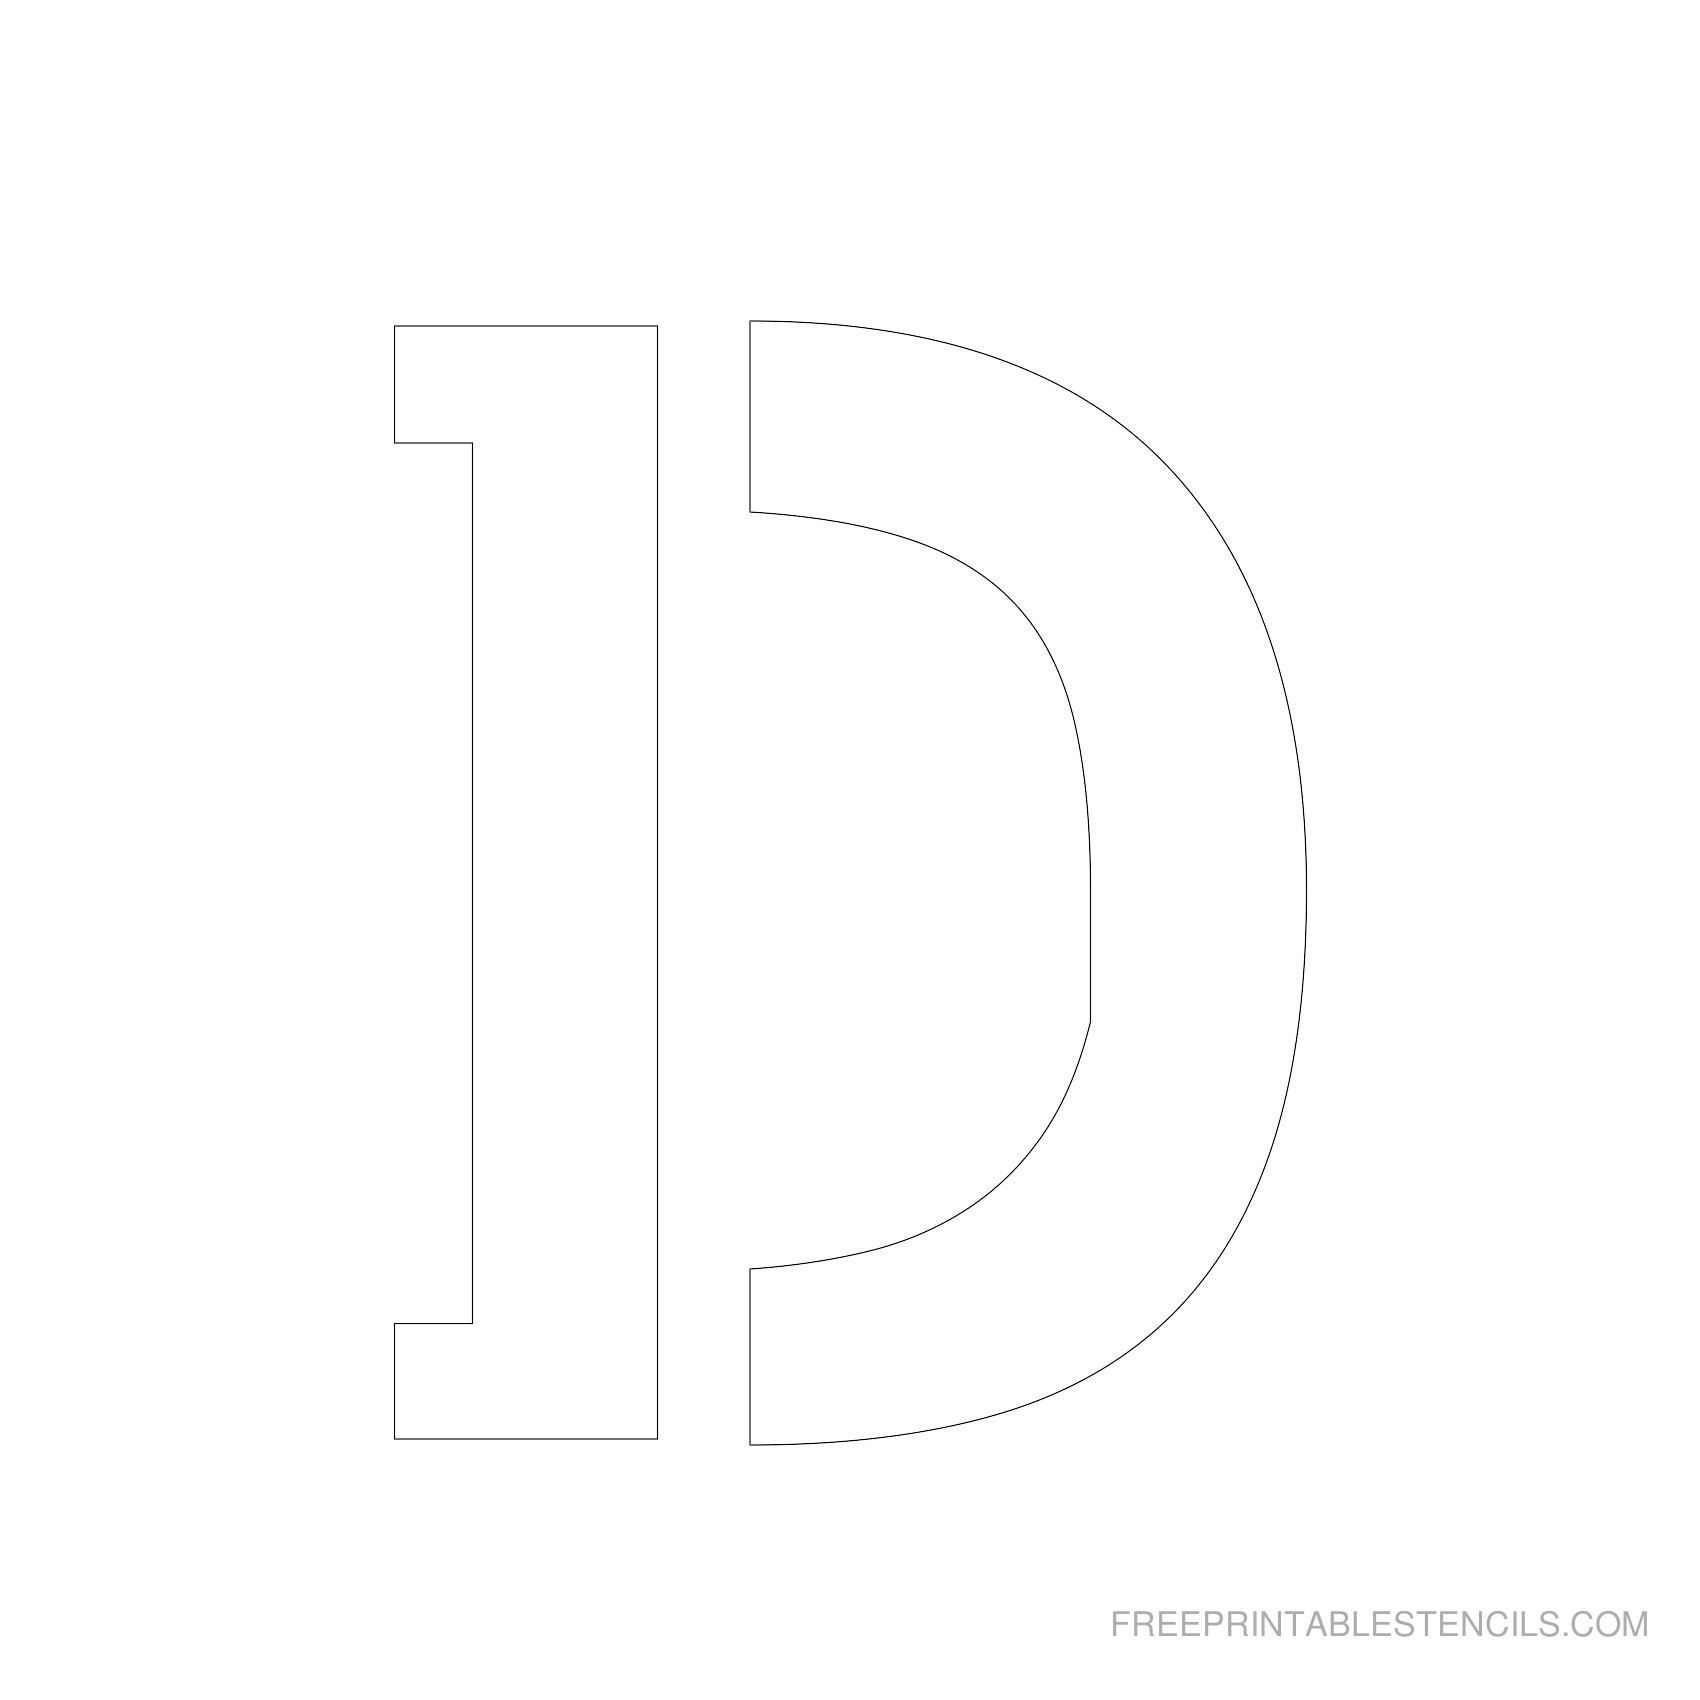 Free Letter Stencils To Cut Out Valid Free Printable Letter Stencils - Online Letter Stencils Free Printable